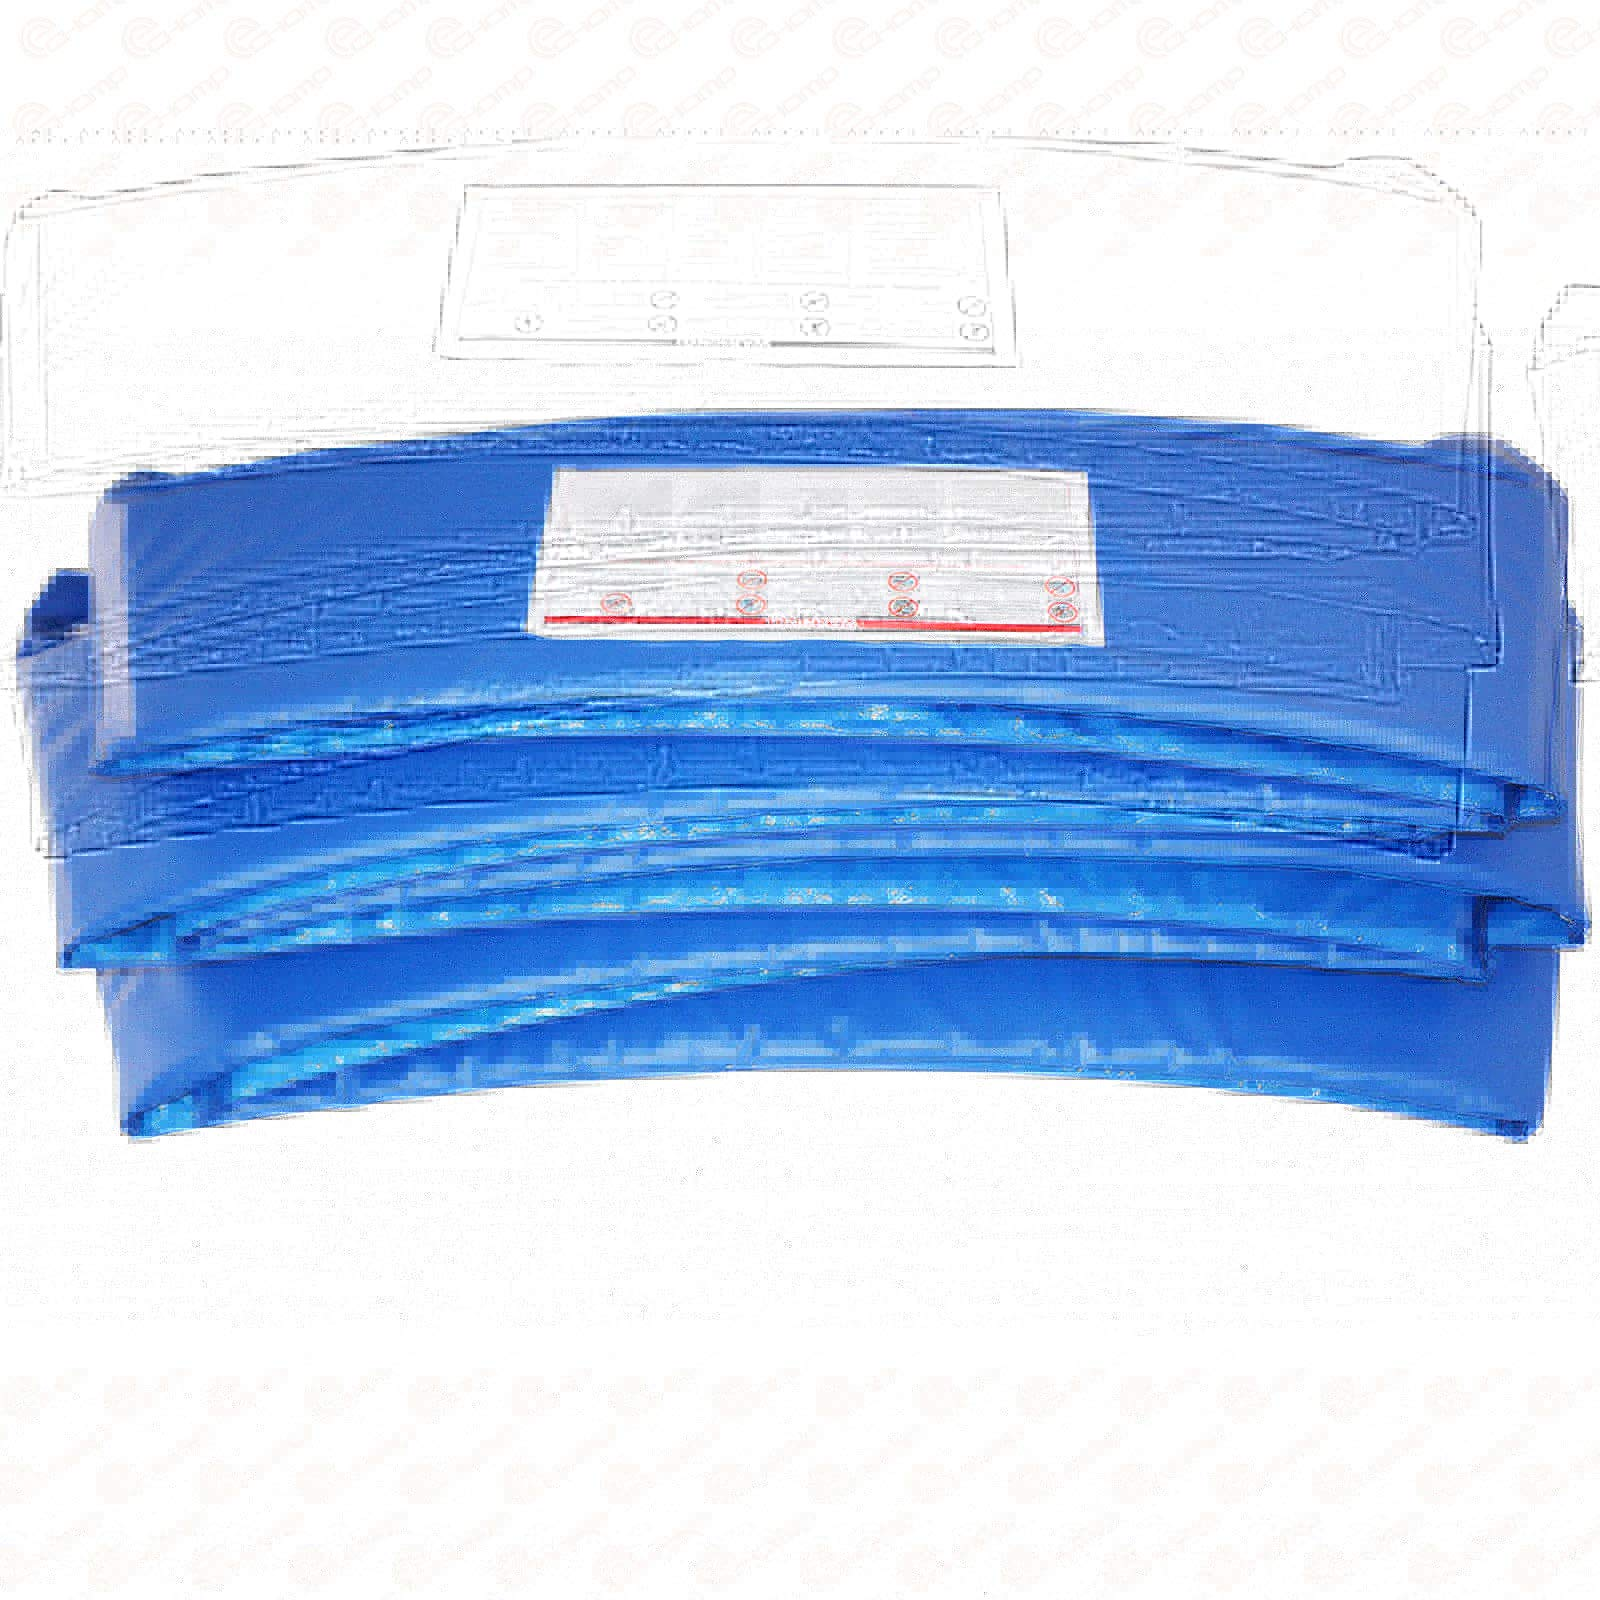 Rimdoc 12/14/15FT Trampoline Pad, PVC Trampoline Replacement Safety Pad,Waterproof Surround Edge Cover,Foam Round Frame Pad (Blue, 12FT)